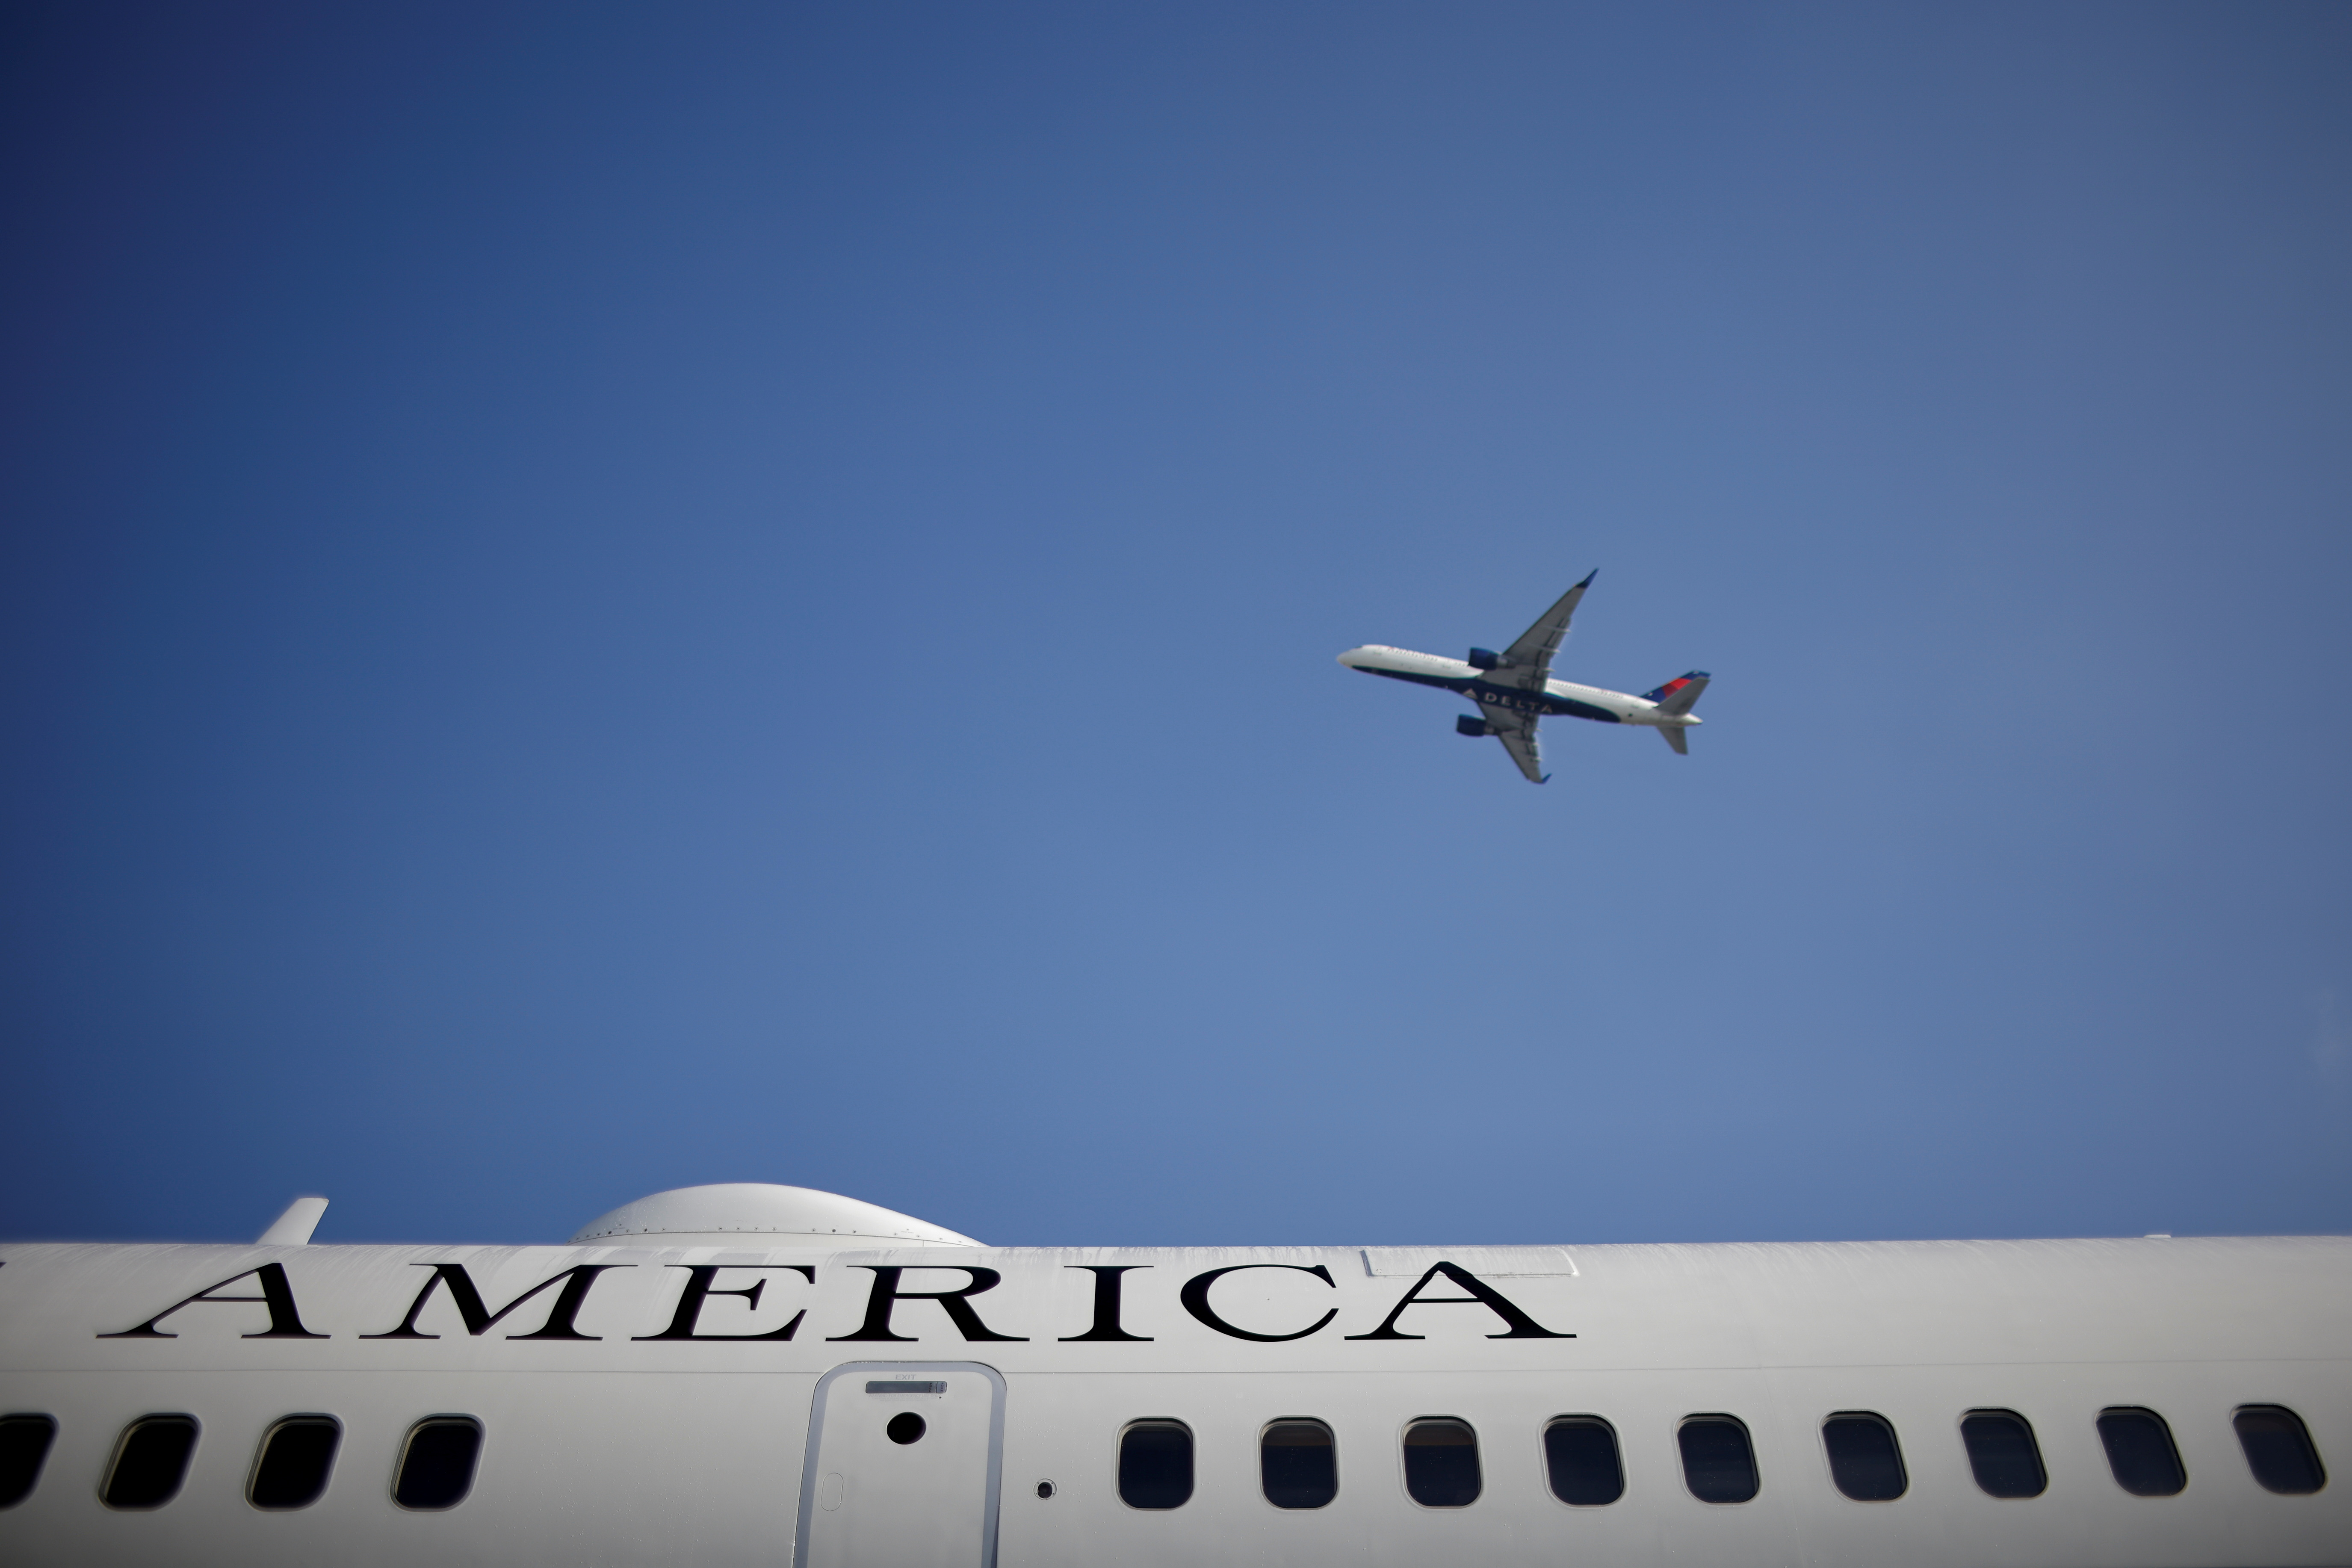 A Delta plane is seen from the Los Angeles International Airport (LAX), in Los Angeles, California, U.S., April 5, 2021. REUTERS/Carlos Barria